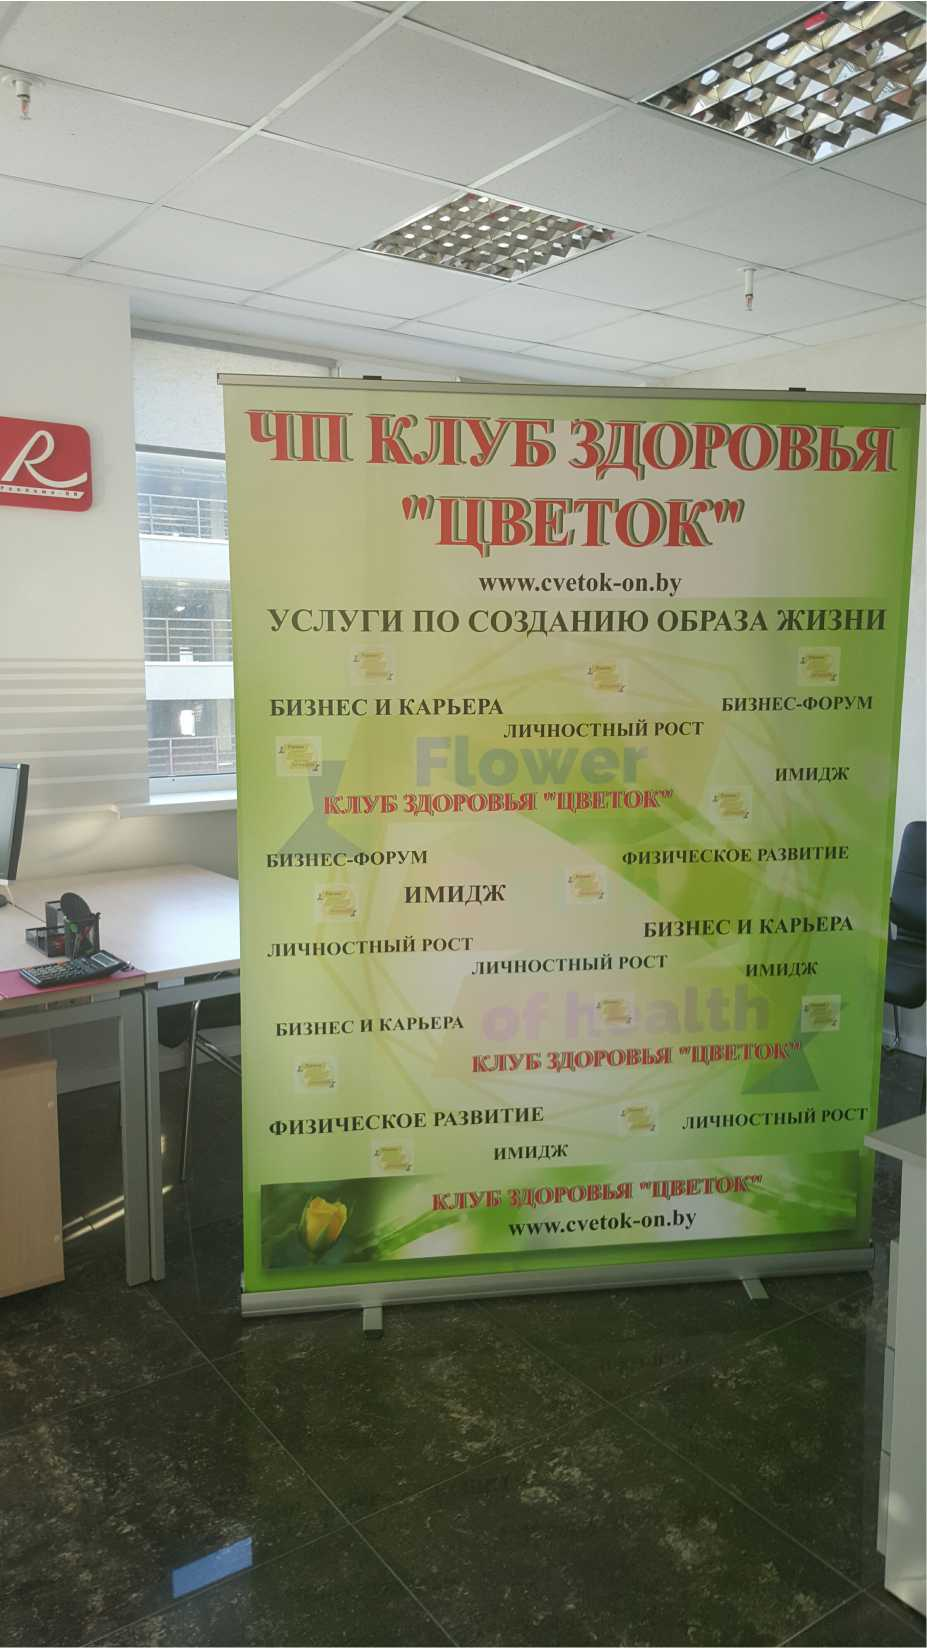 Express Roll-Up 120. 150 (Экспресс Ролл-Ап 120,150) reklama-on.by